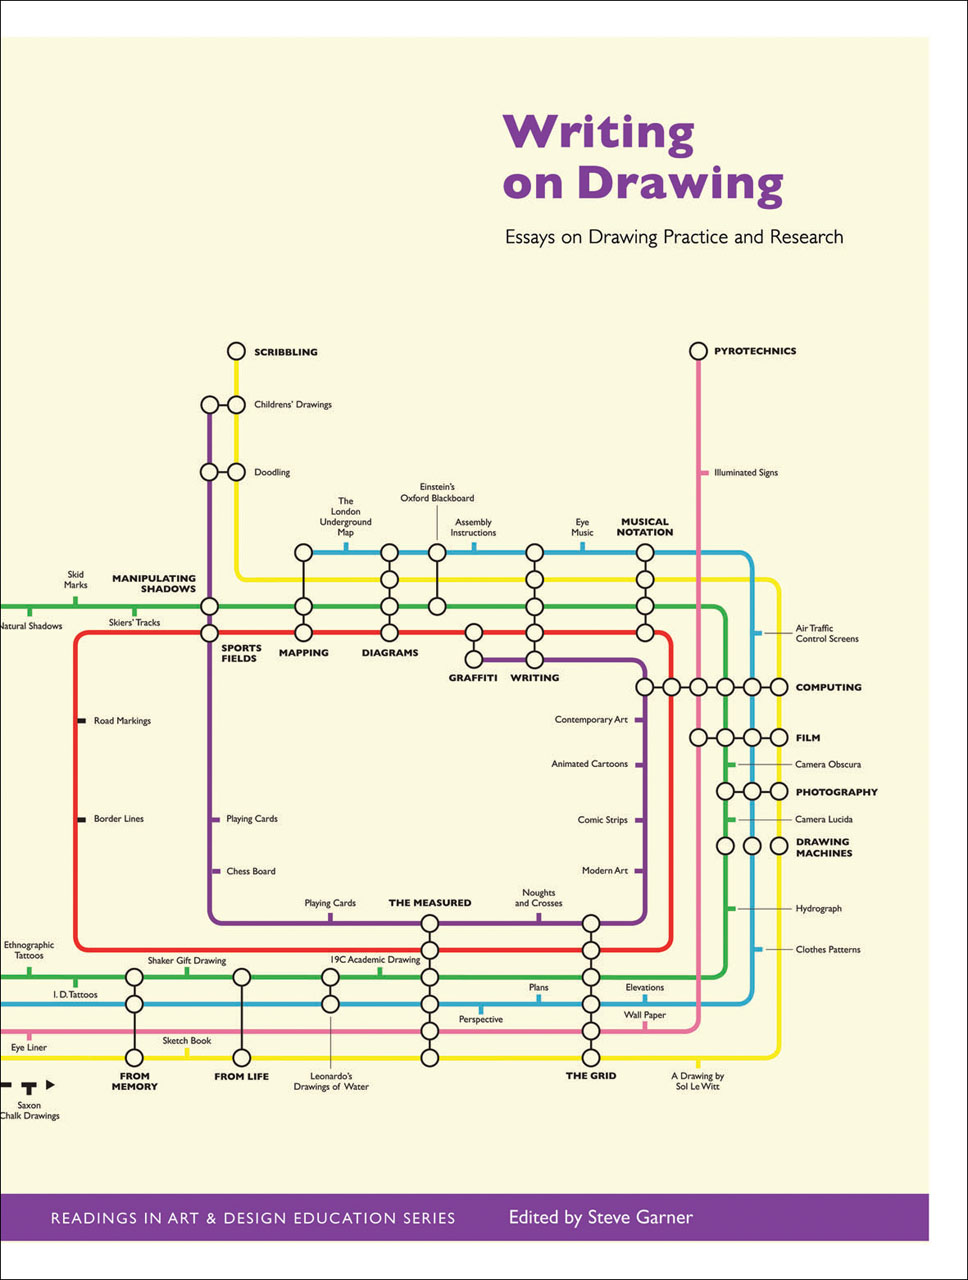 Writing on Drawing – Essays on Drawing Practice and Research